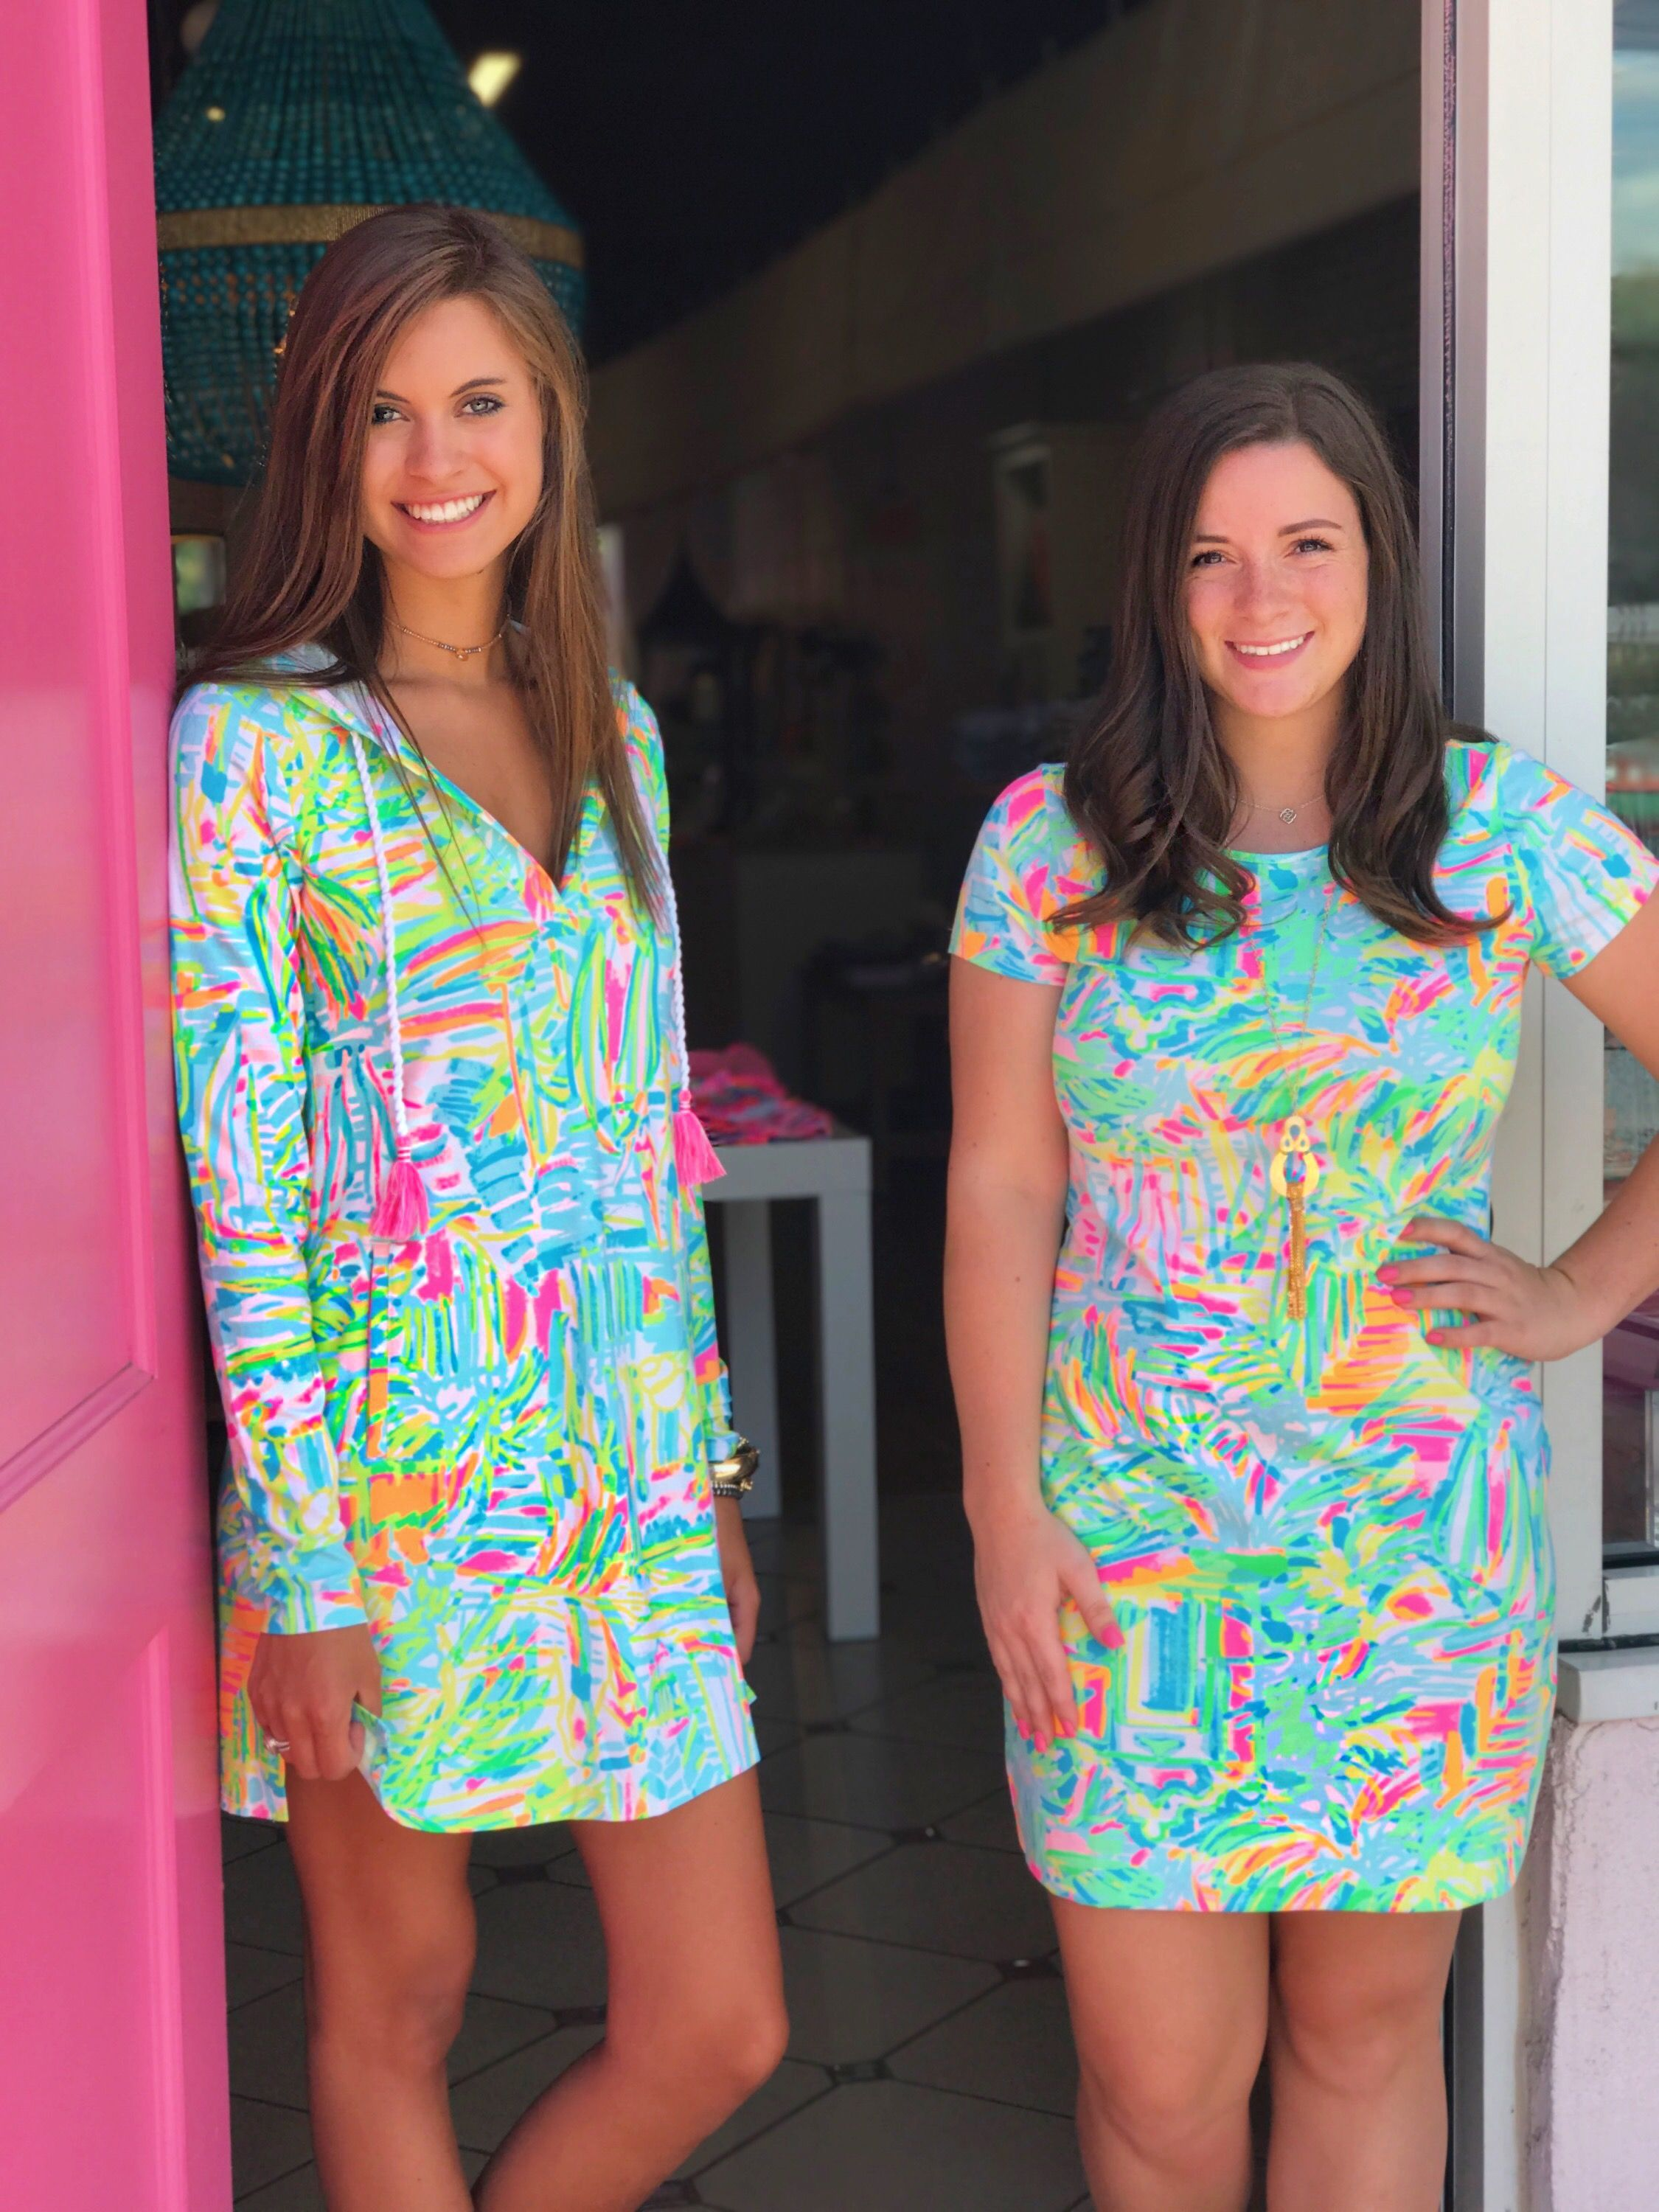 635d34986bf SEA SALT AND SUN LILLY PULITZER SUMMER 2017 Short Sleeve Marlowe Dress  Rylie Beach Cover-up Ril